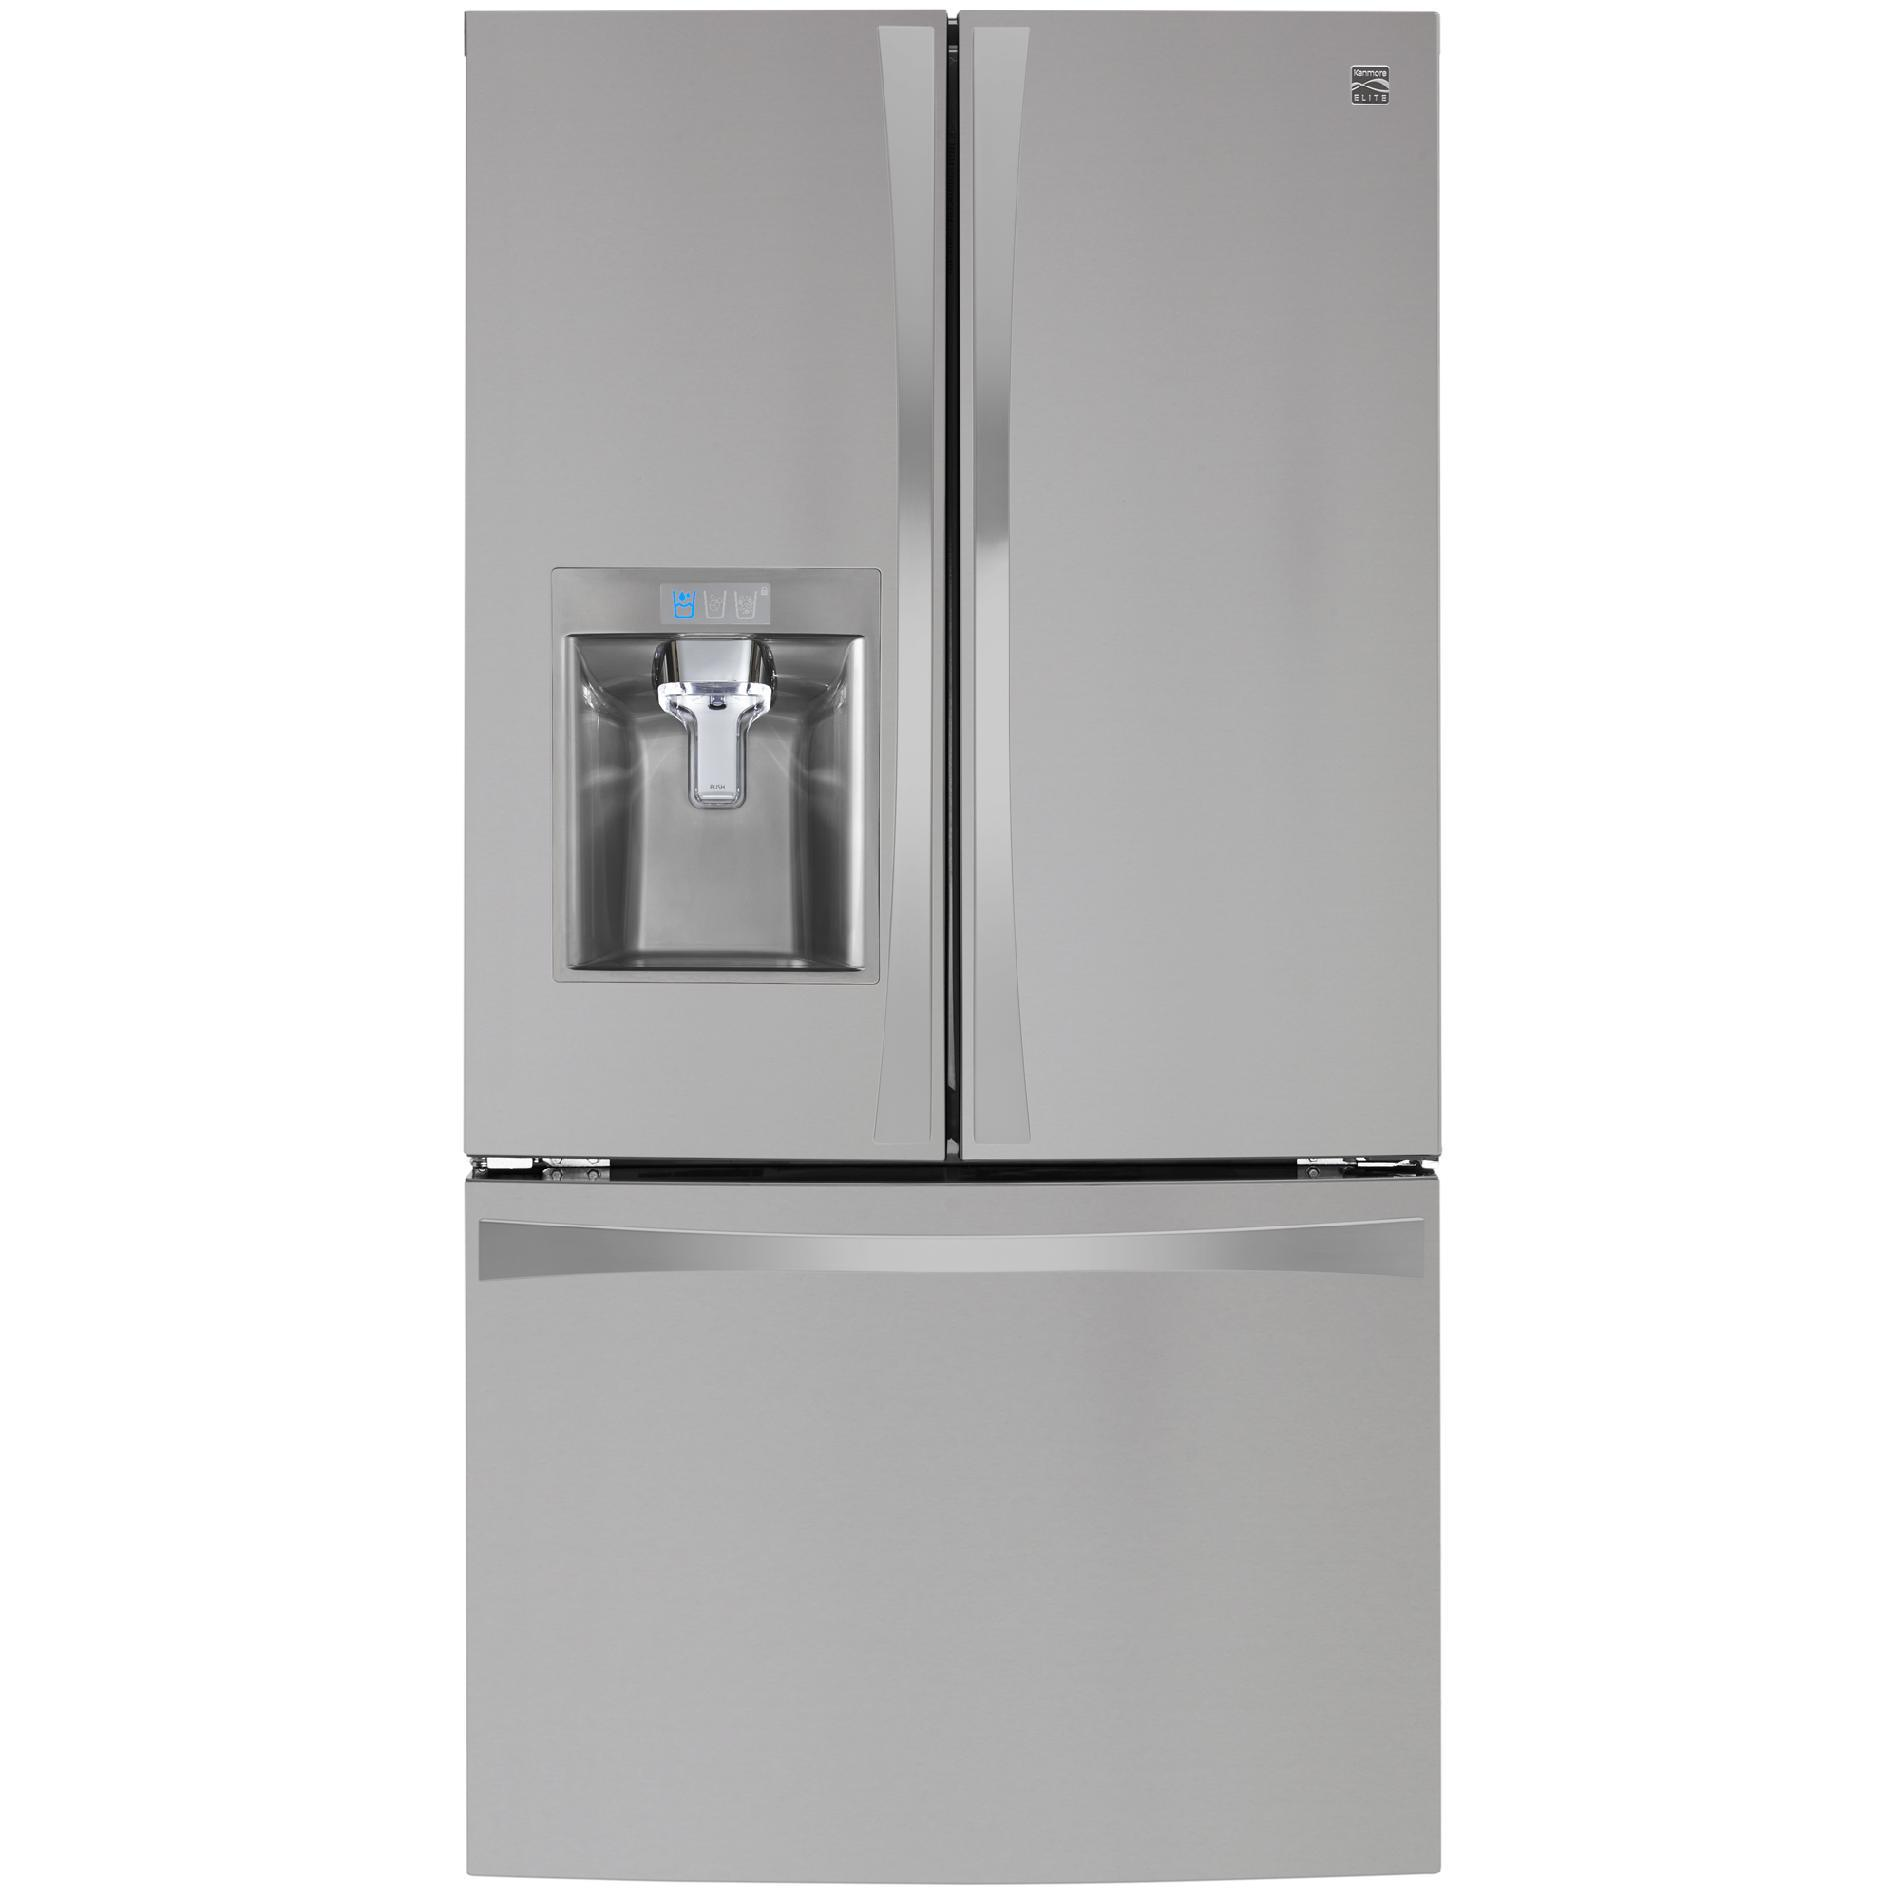 74025-29-8-cu-ft-French-Door-Bottom-Freezer-Refrigerator%E2%80%94Active-Finish